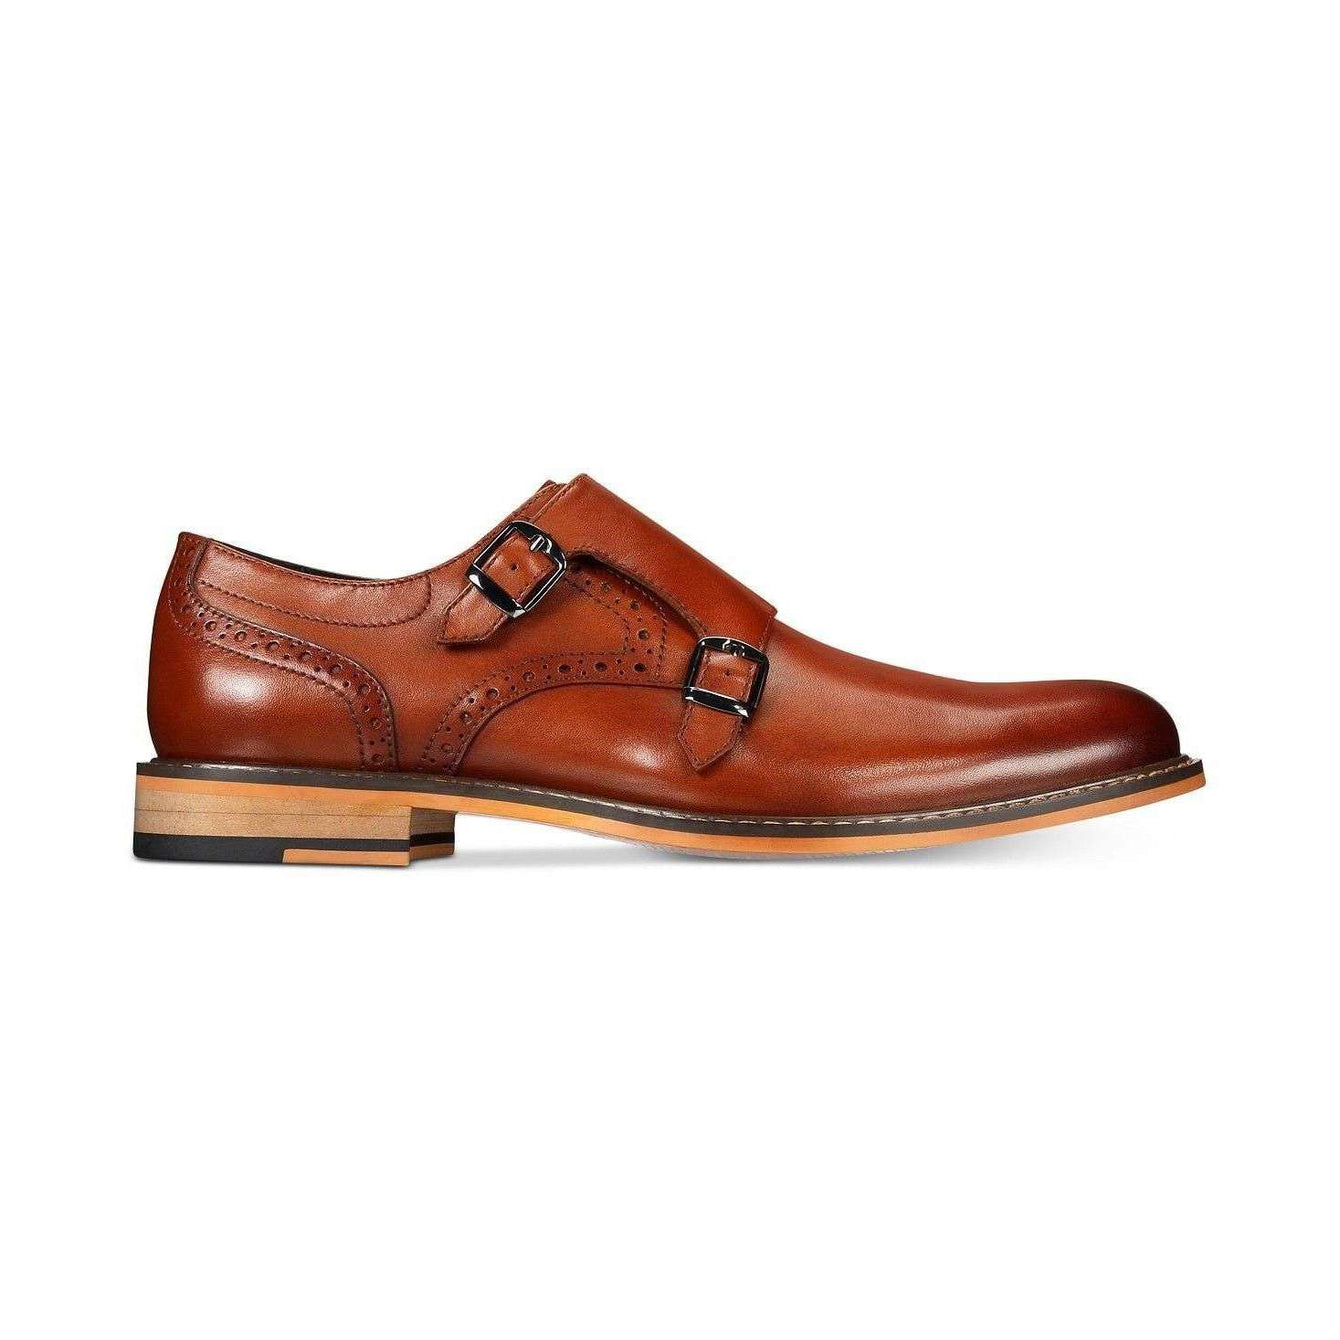 Bar III Jesse Monk-Strap Oxfords  Bar III  kick-it-shoe-outlet.myshopify.com Kick-it Shoe Outlet Shoes Cheap